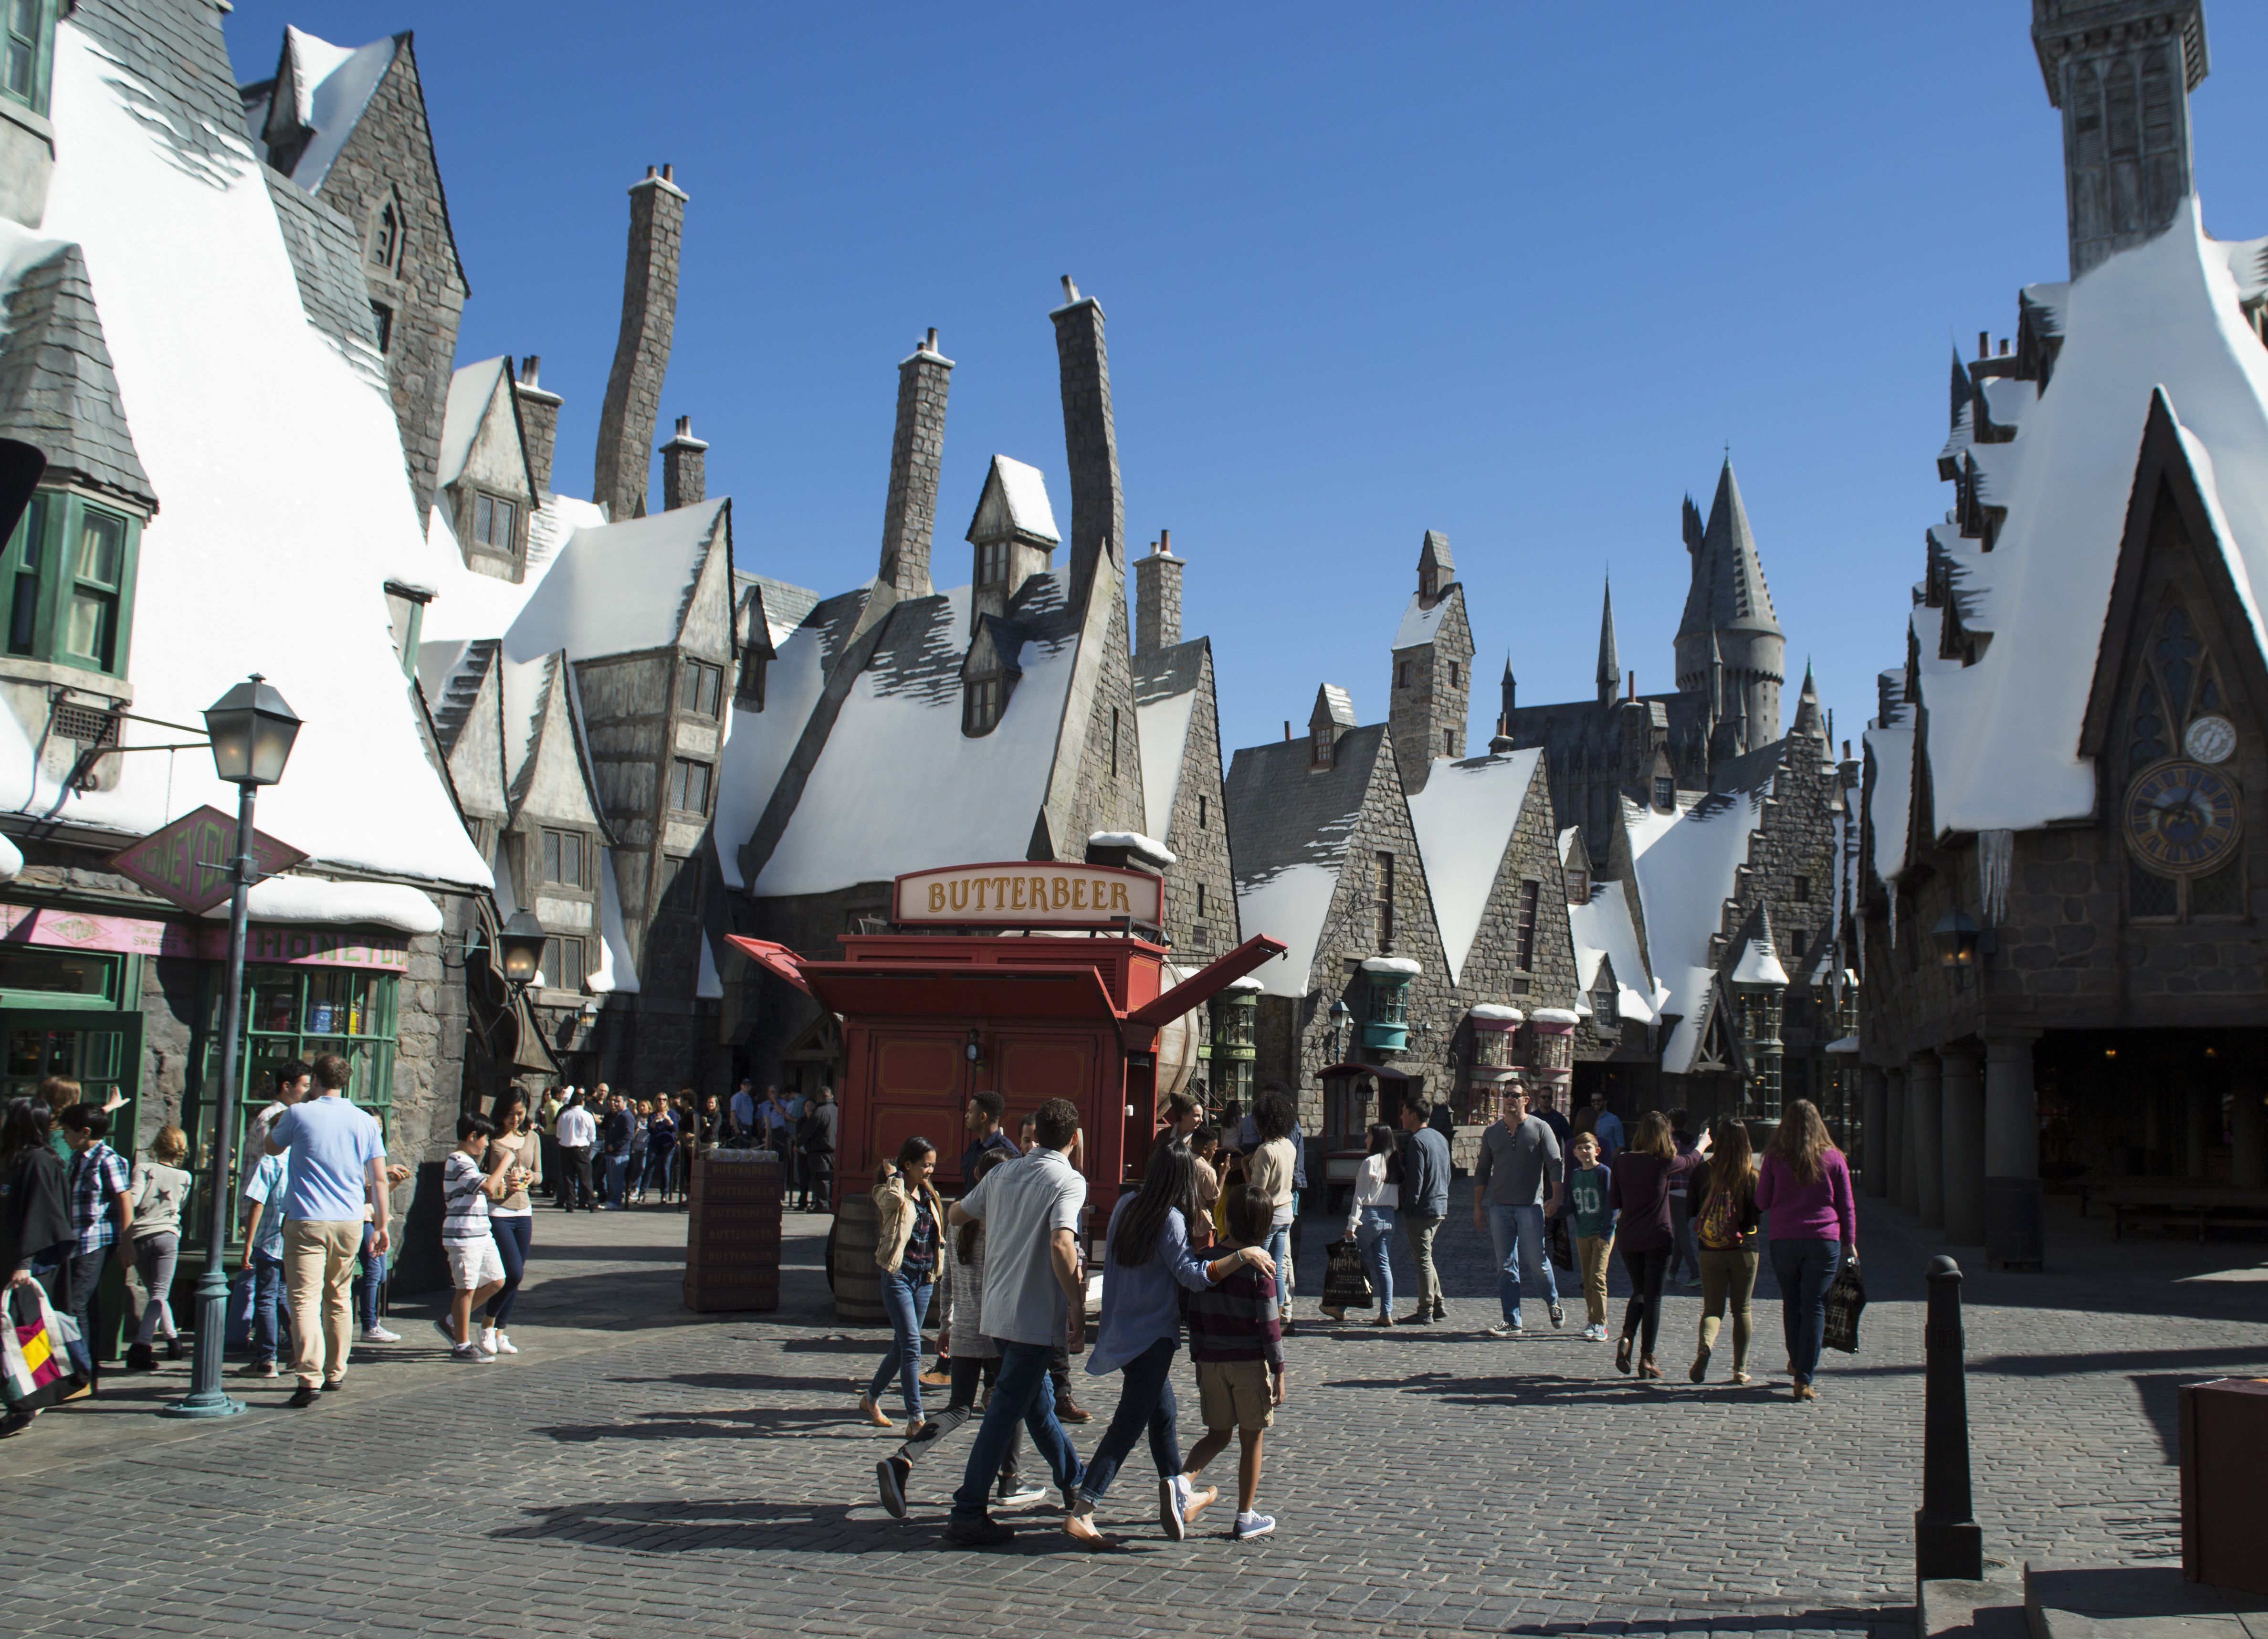 Hogshead Village, part of The Wizarding World of Harry Potter at Universal Studios Hollywood